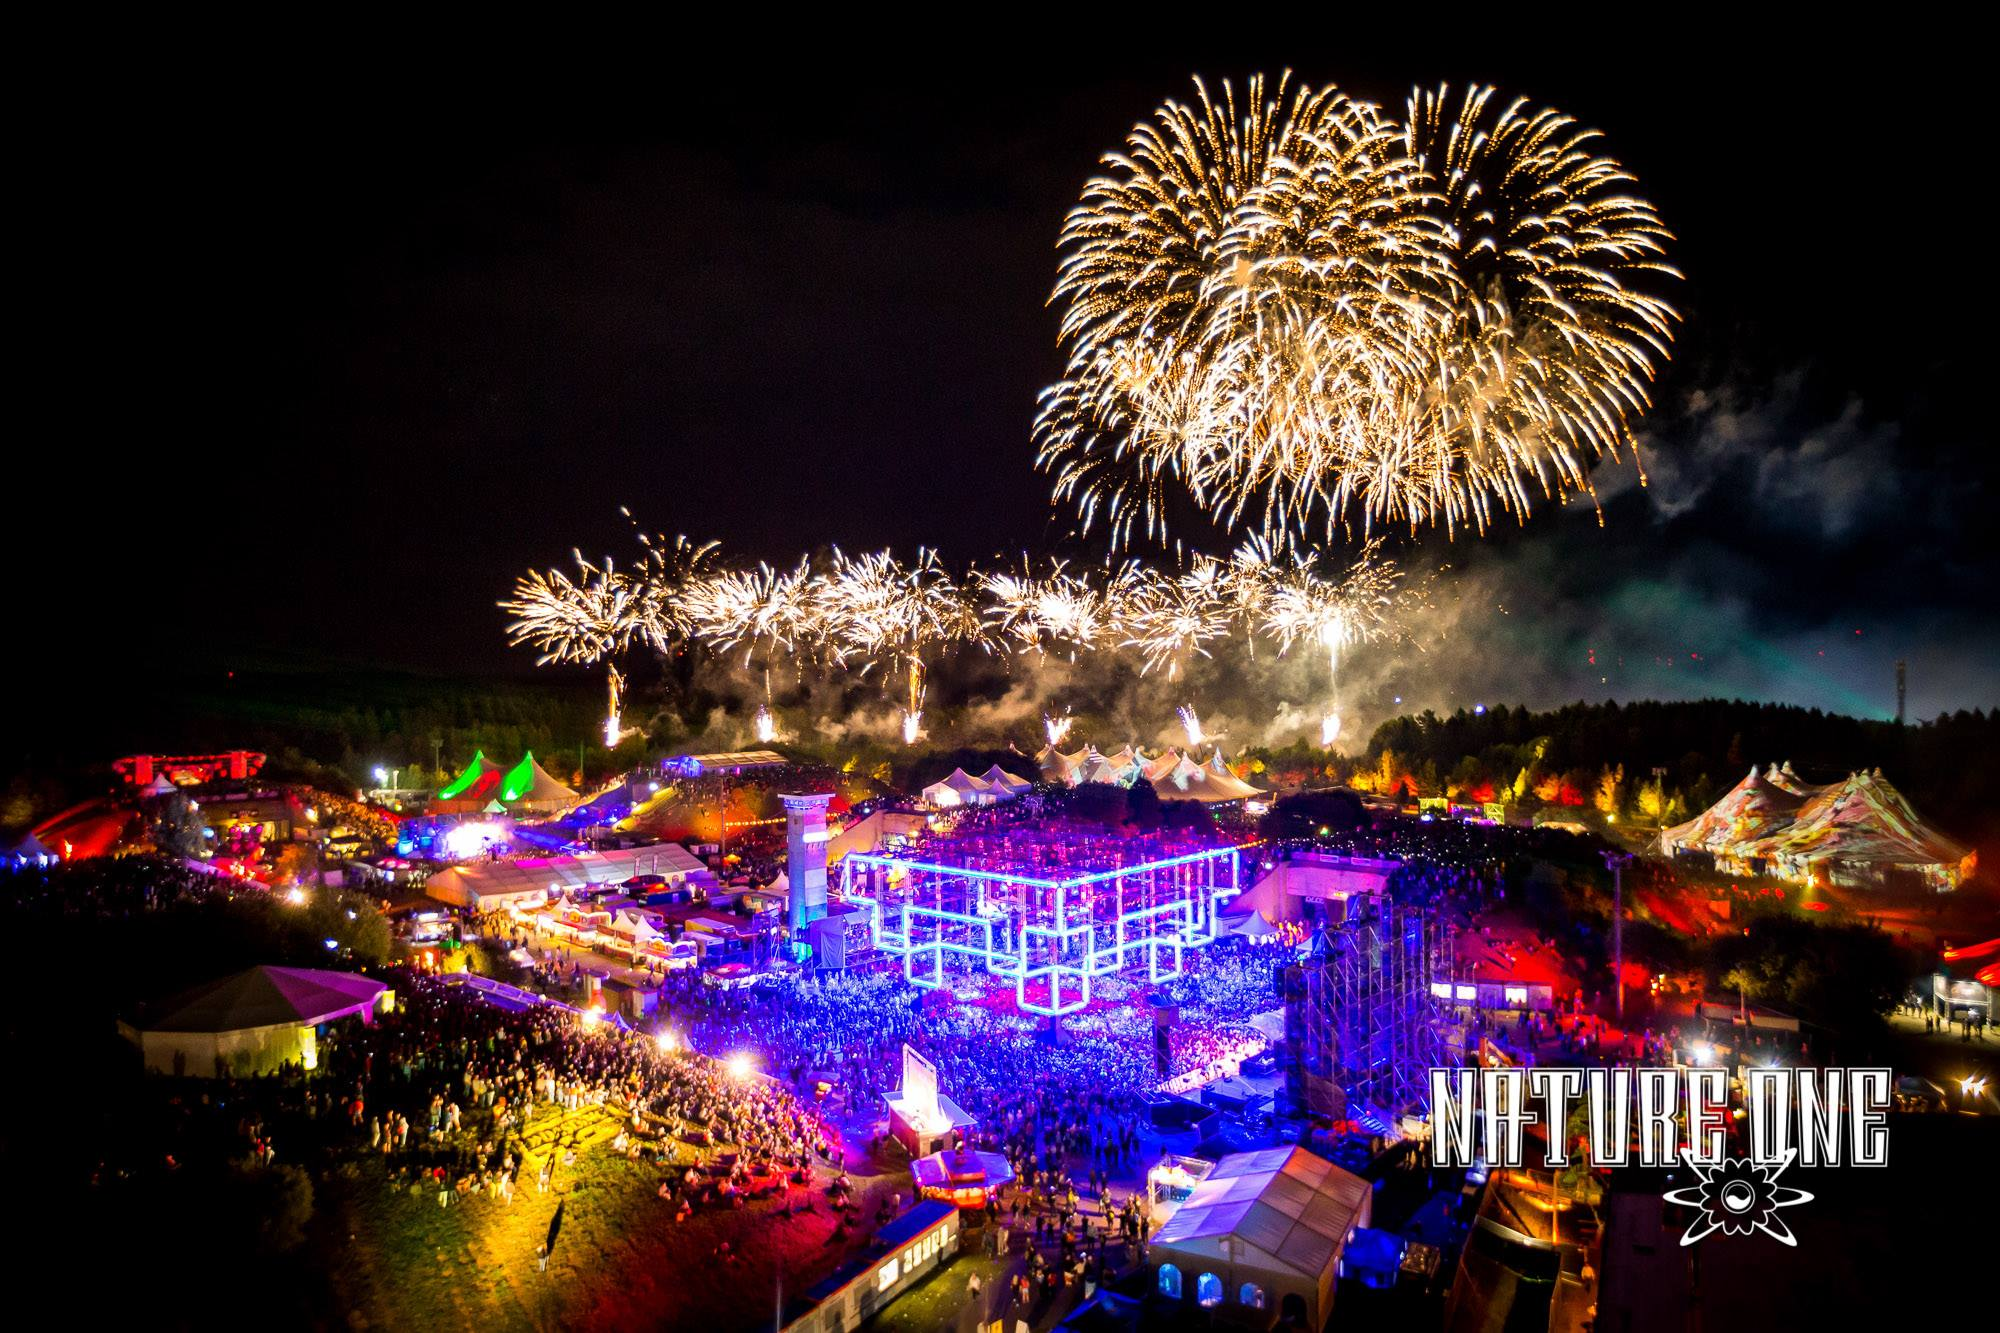 Nature One Music Festival in Germany